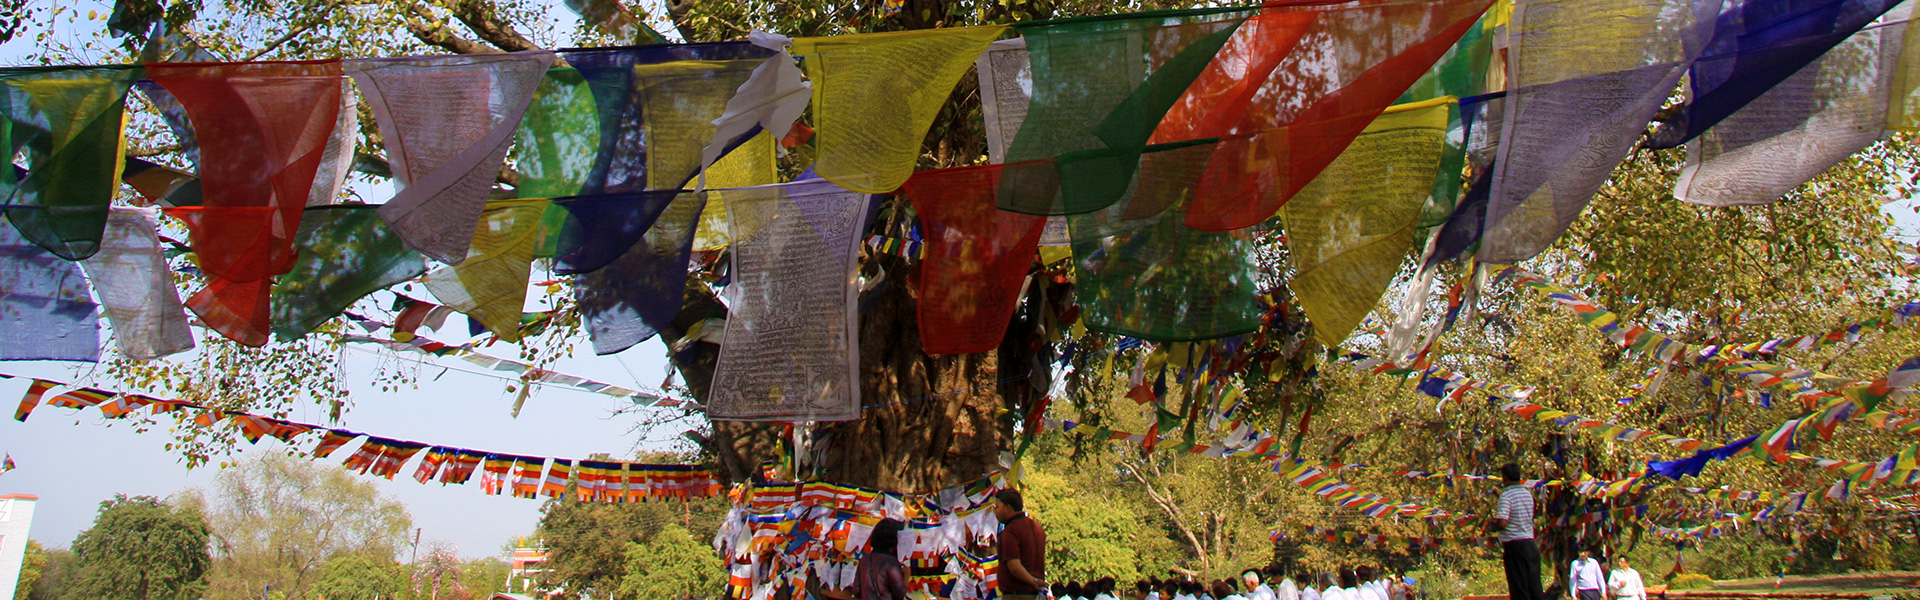 nepal-prayer-flags-in-tree